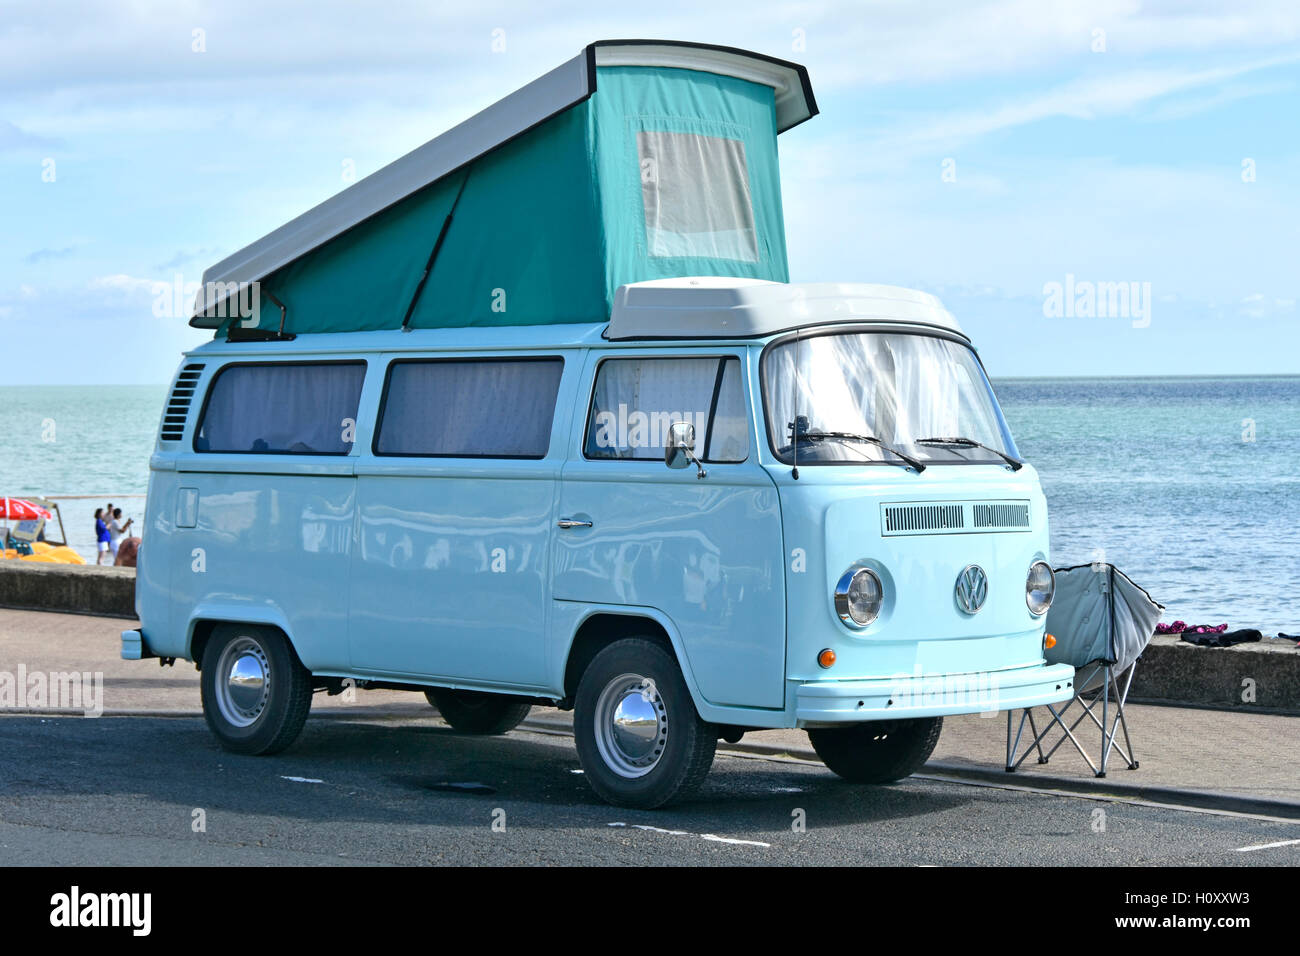 VW volkswagen RV motorhome camper van raised roof parked Shanklin seaside Isle of Wight England UK holiday seafront - Stock Image